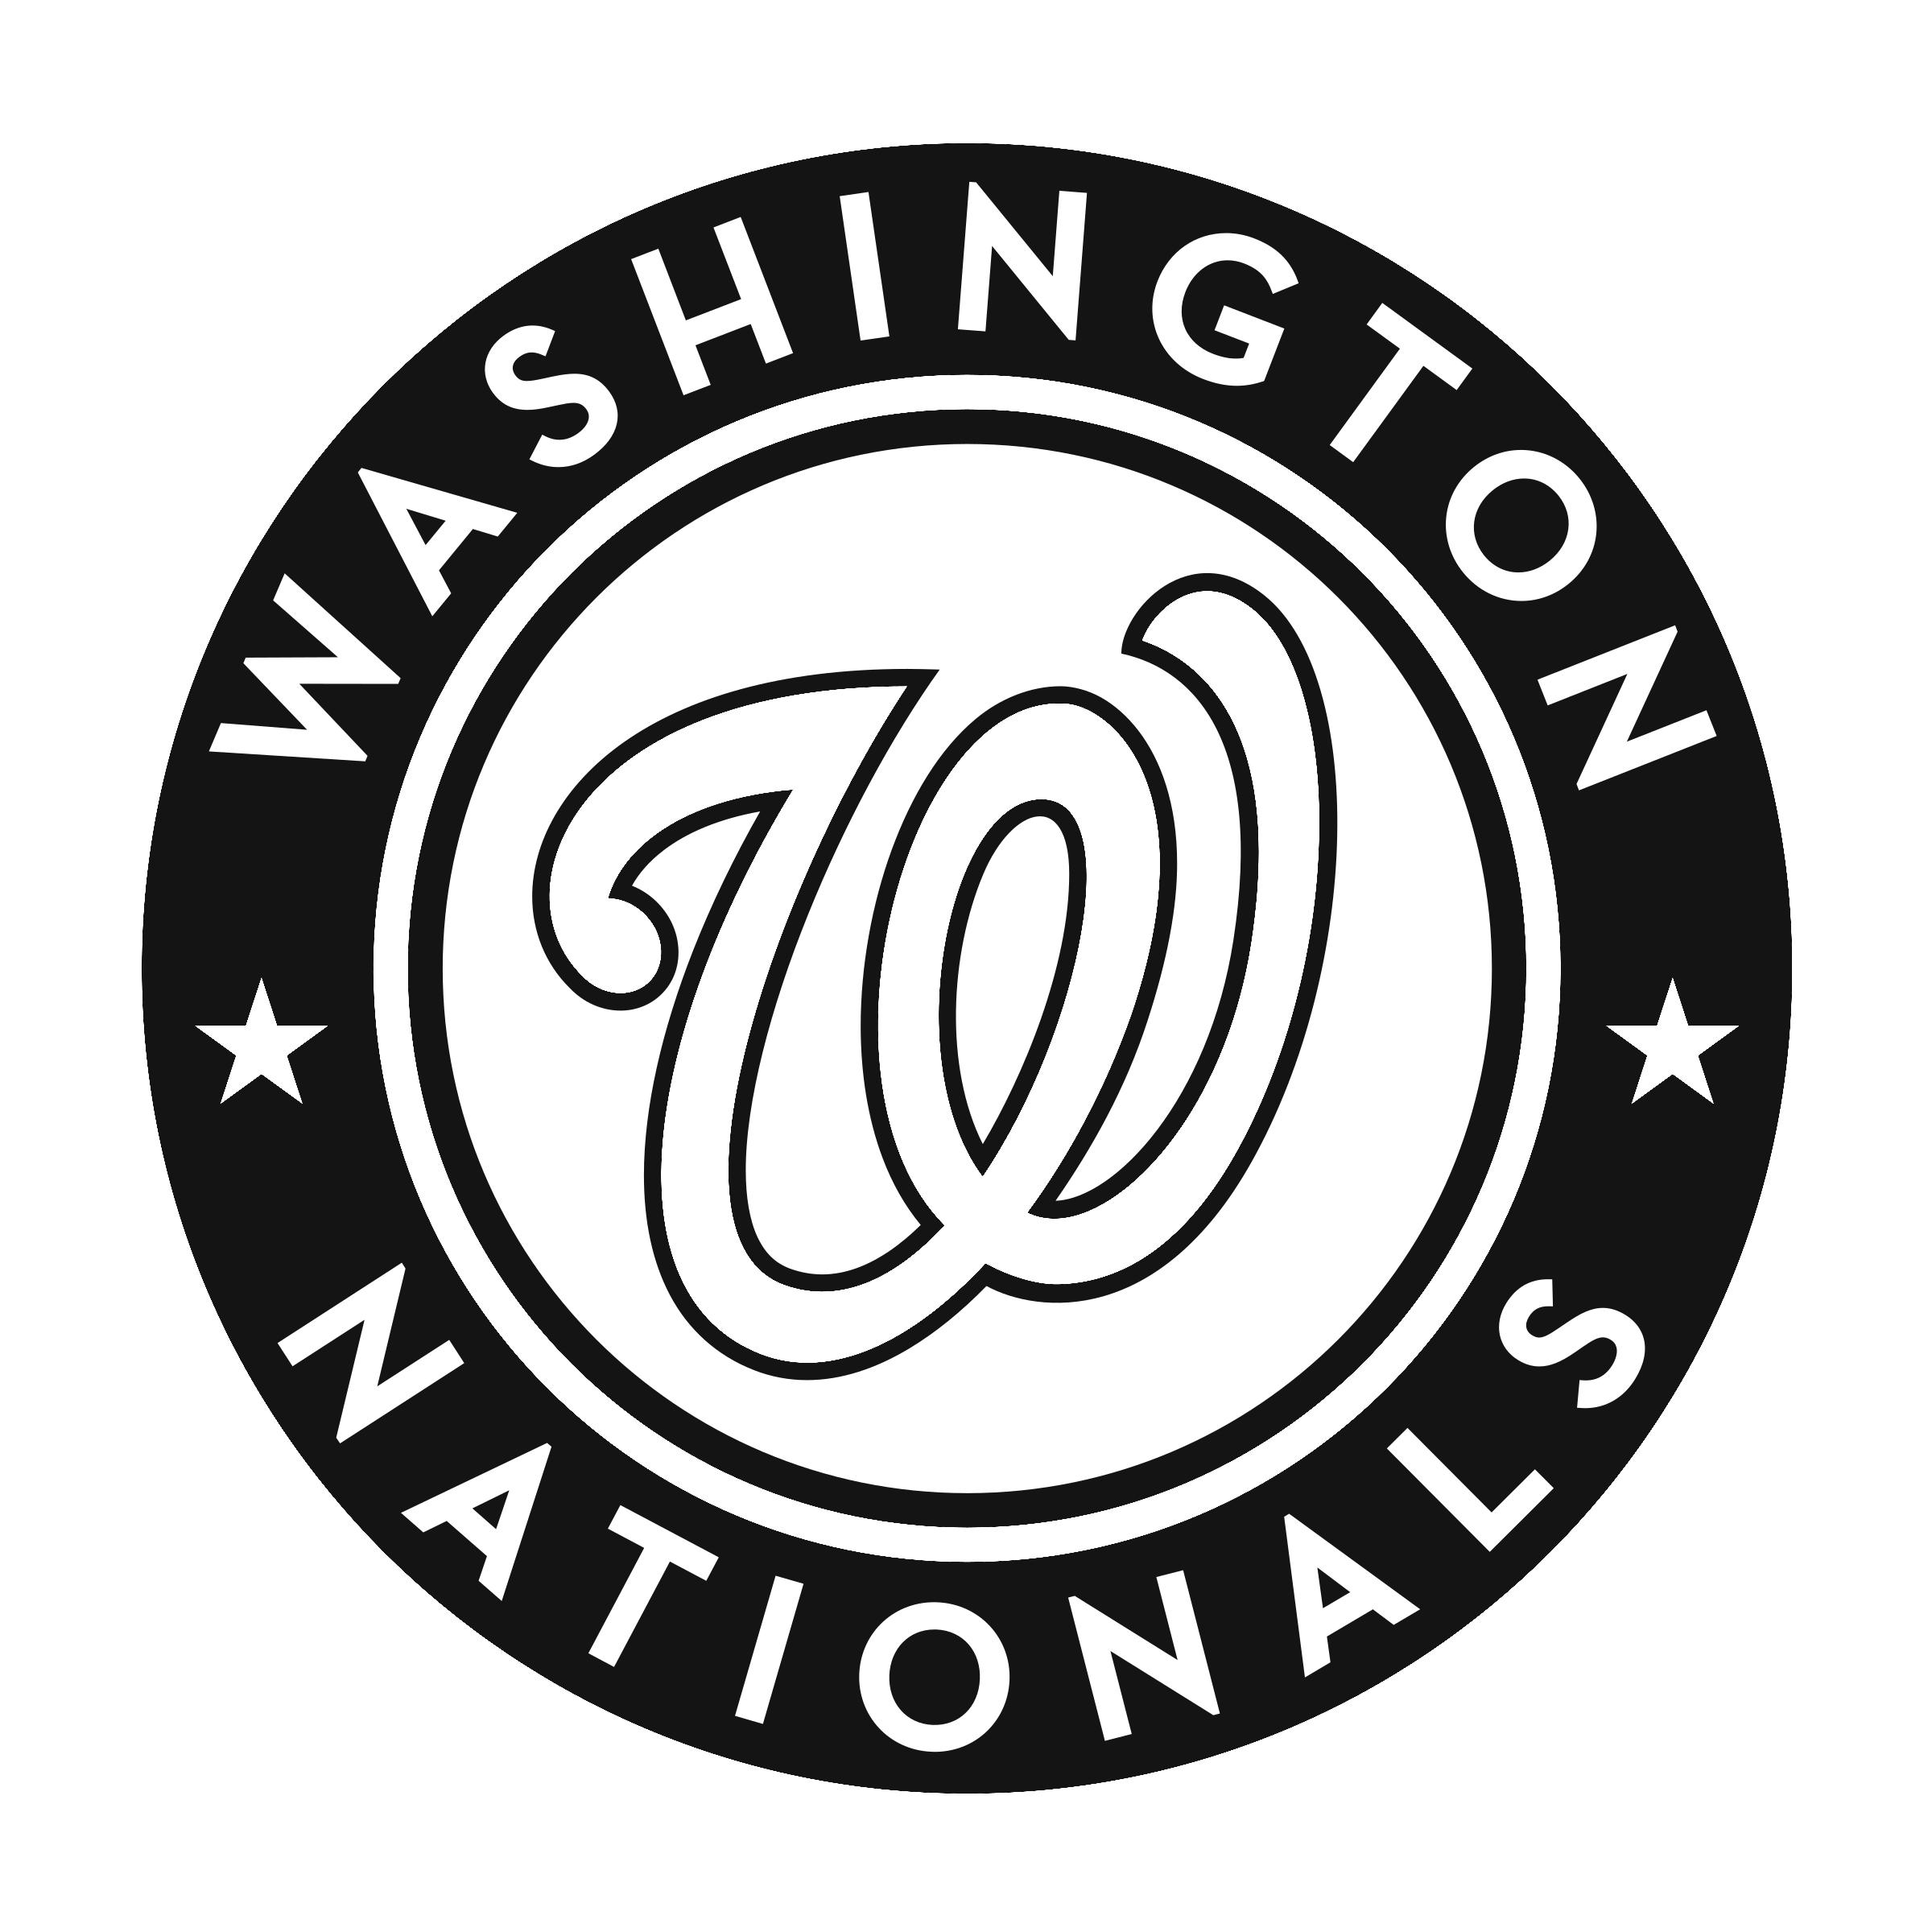 Washington nationals logo png. Transparent svg vector freebie